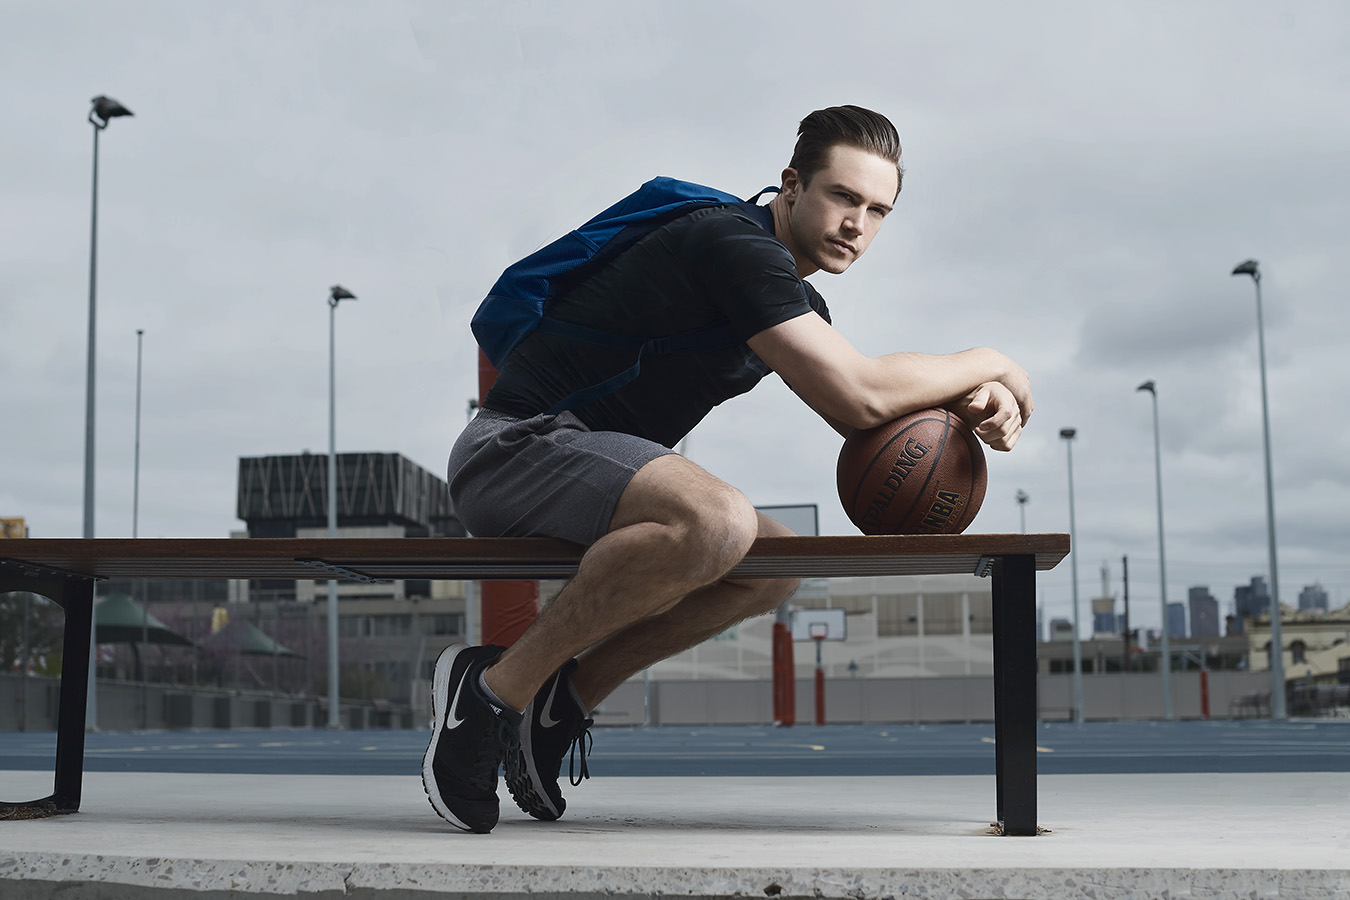 Neal Seated on a bench leaning against basketball